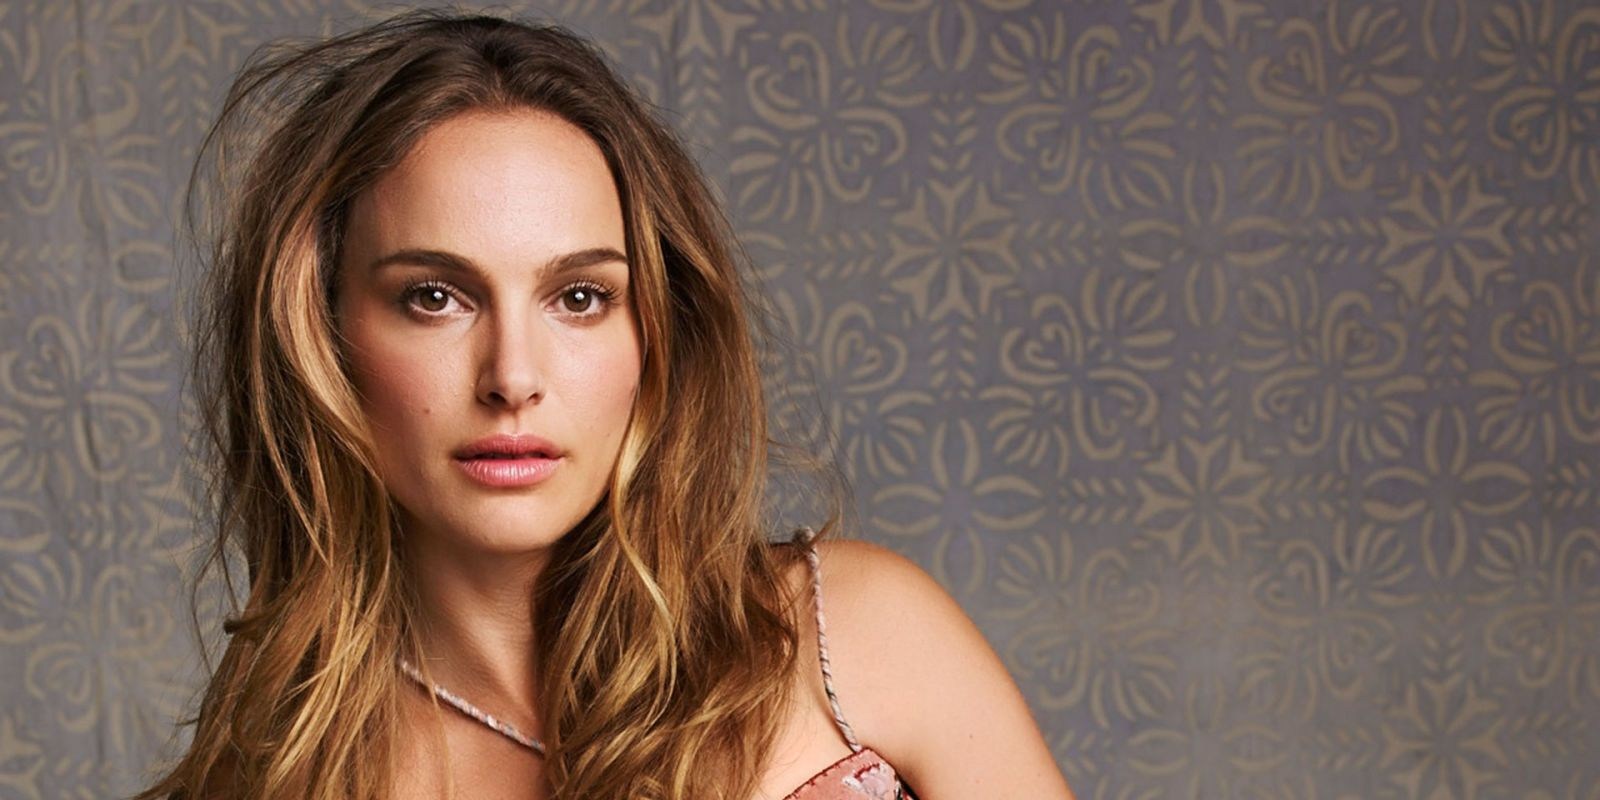 Behind the Cover: Natalie Portman